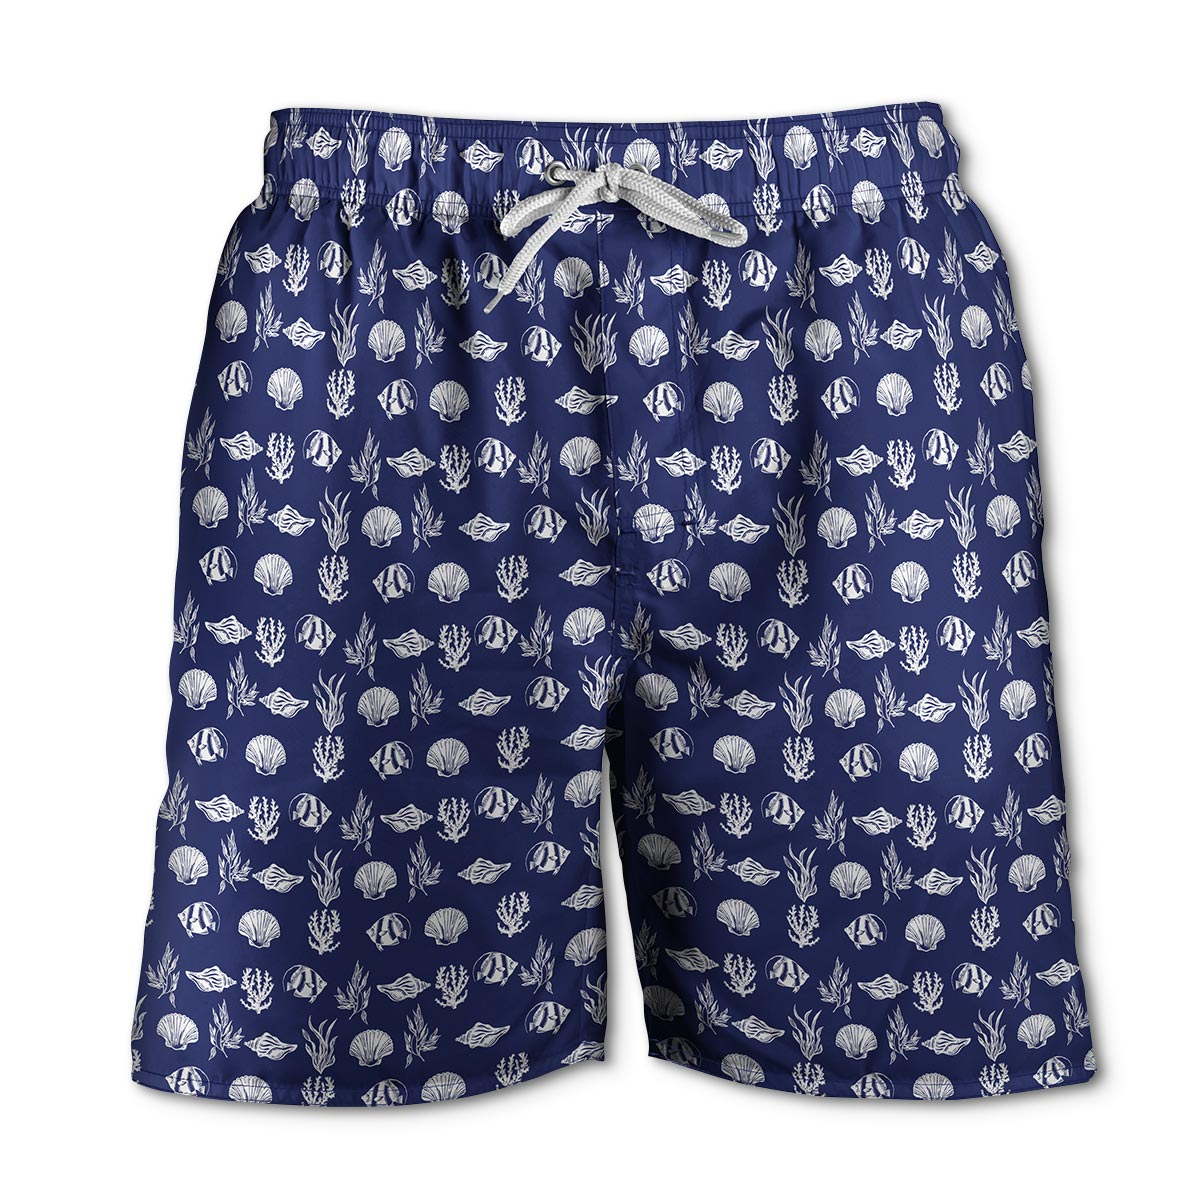 Newport Blue - Swim Shorts | Cerviche - Navy/White